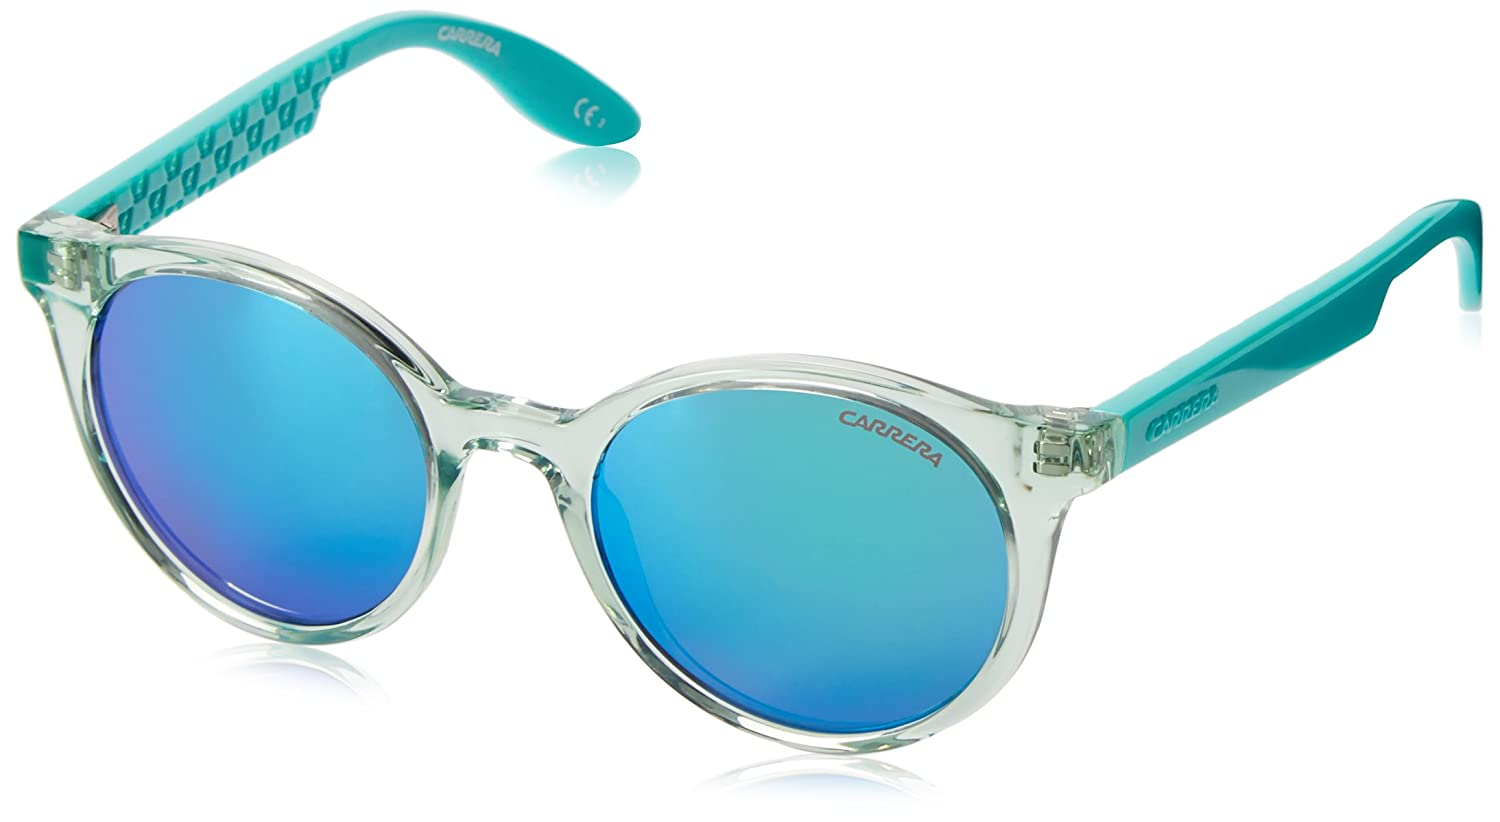 644bc48570f62 Amazon.com  Carrera Kids  Carrerino 14 s Wayfarer Sunglasses